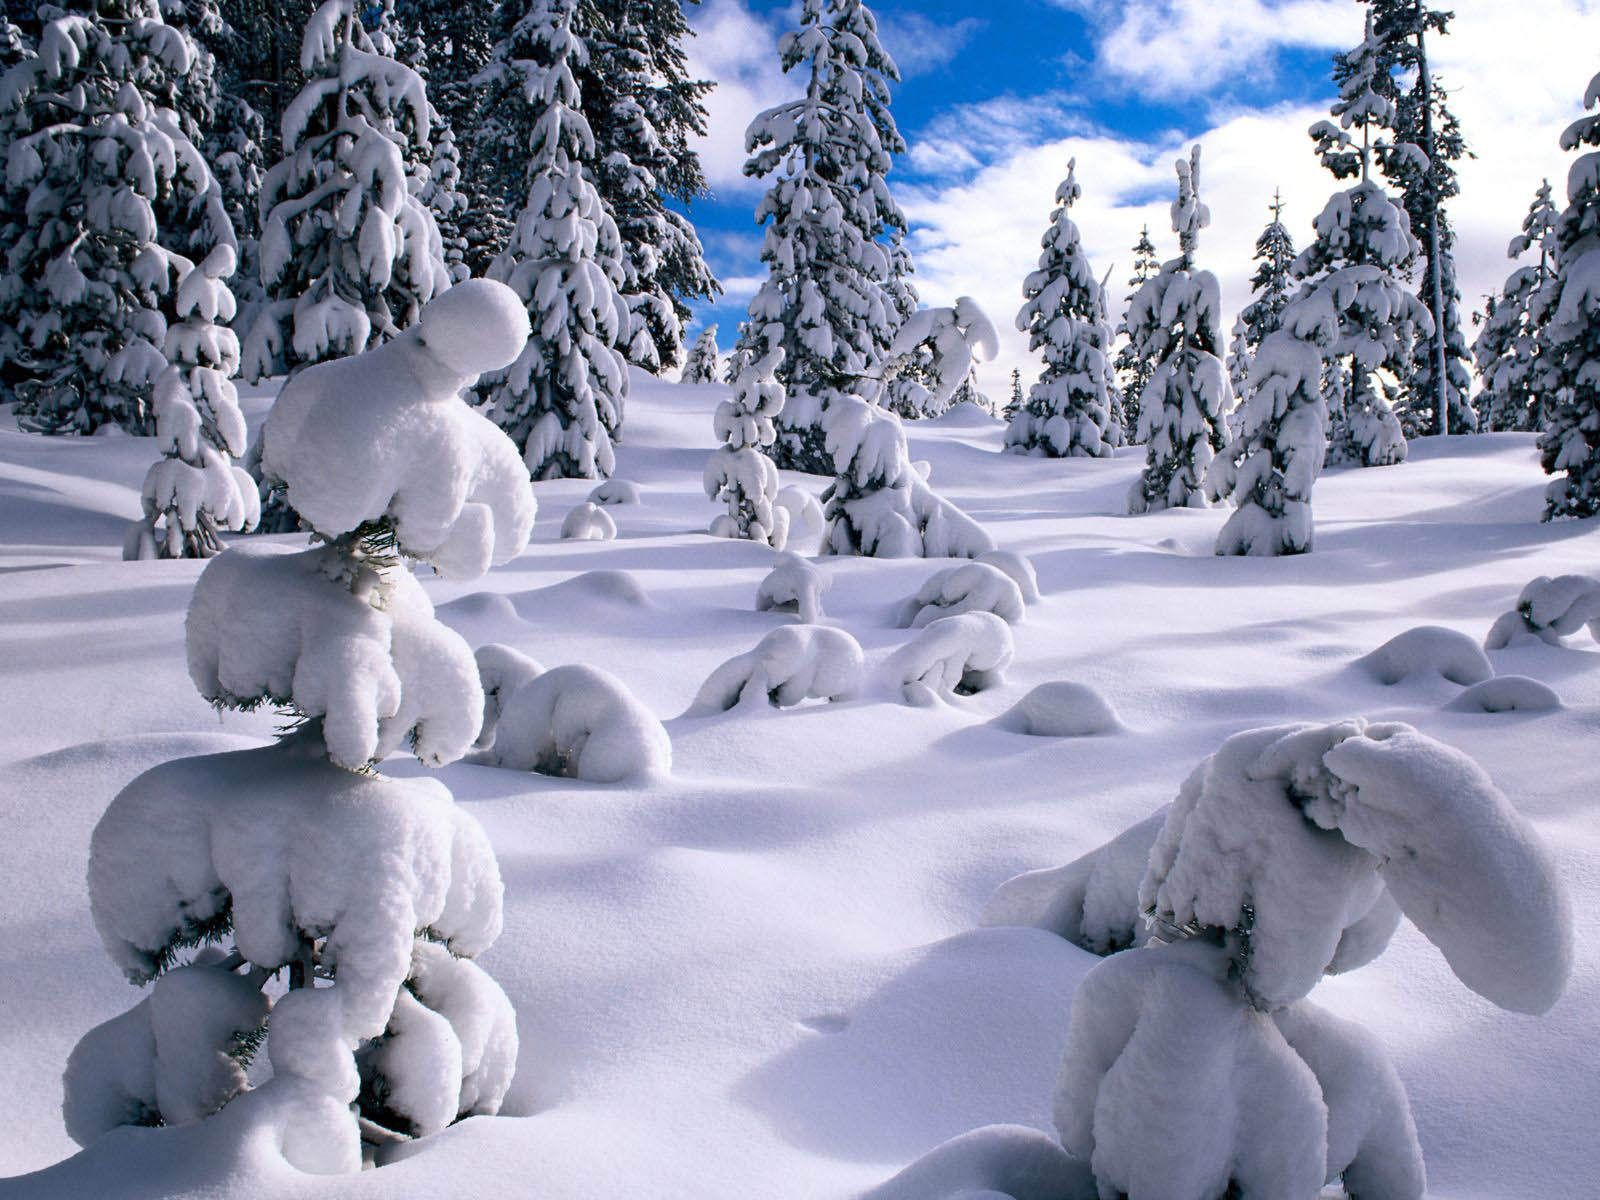 Wallpapers: Winter Desktop Wallpapers And Backgrounds